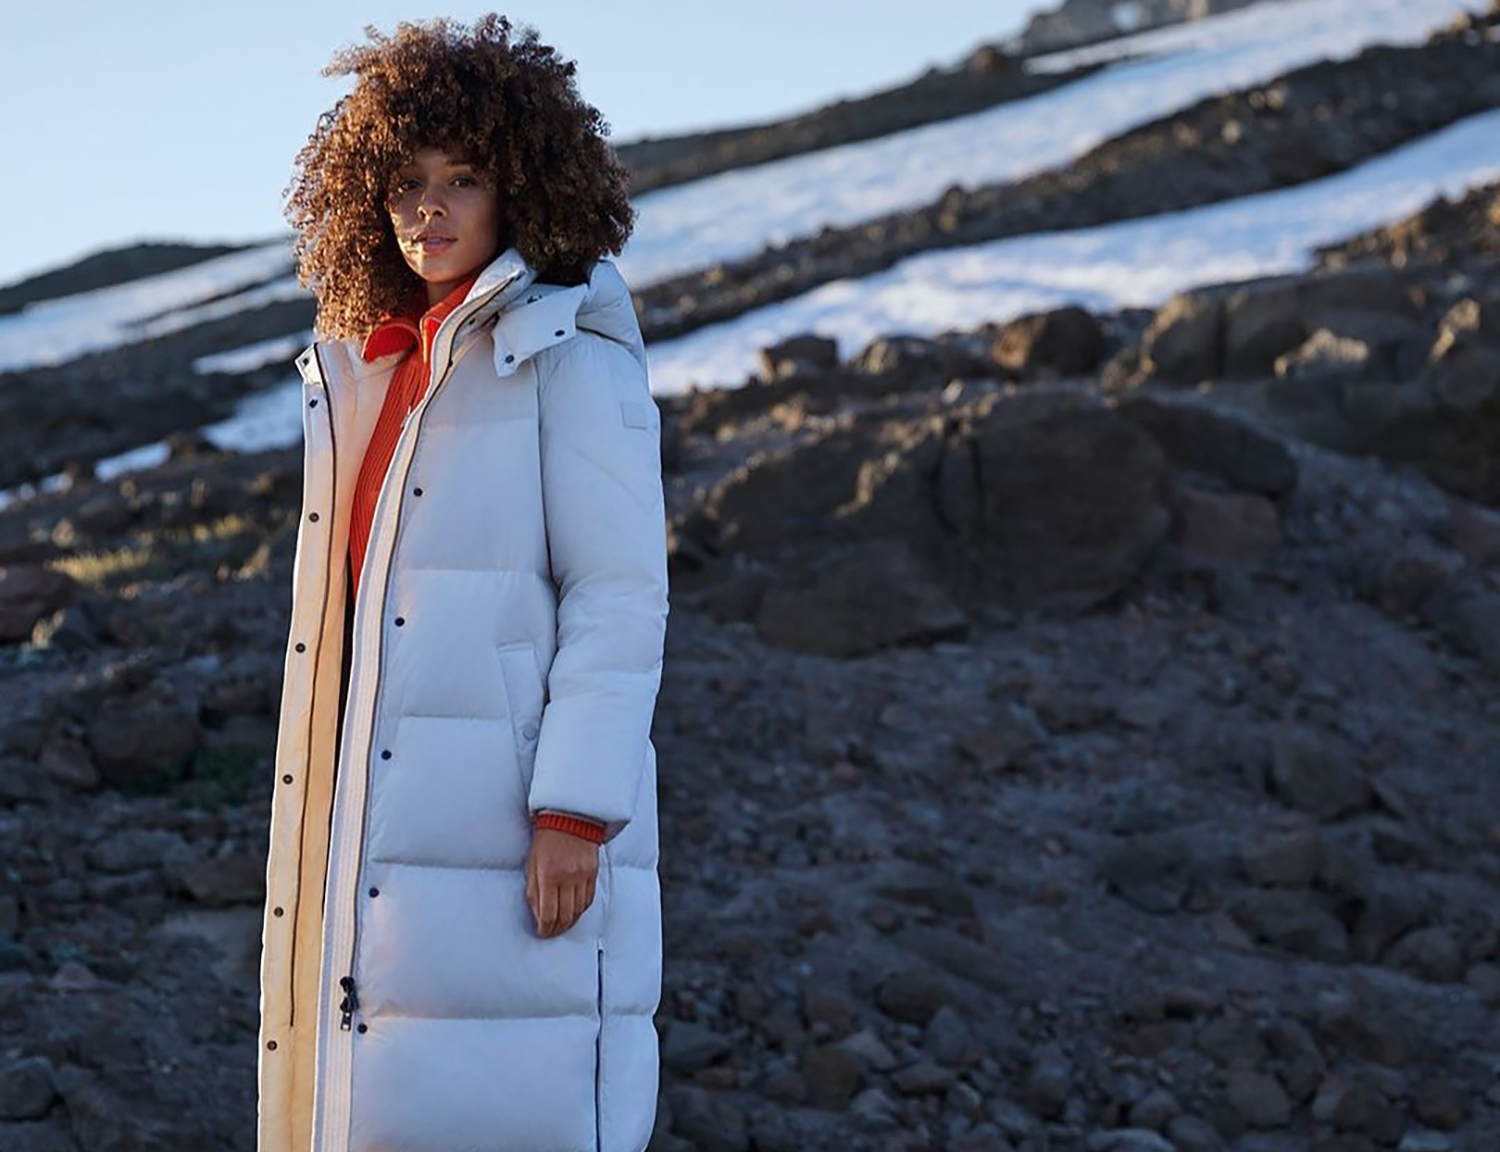 Woolrich - Haute Couture - Luxury - Fashion - Parka - New Collection